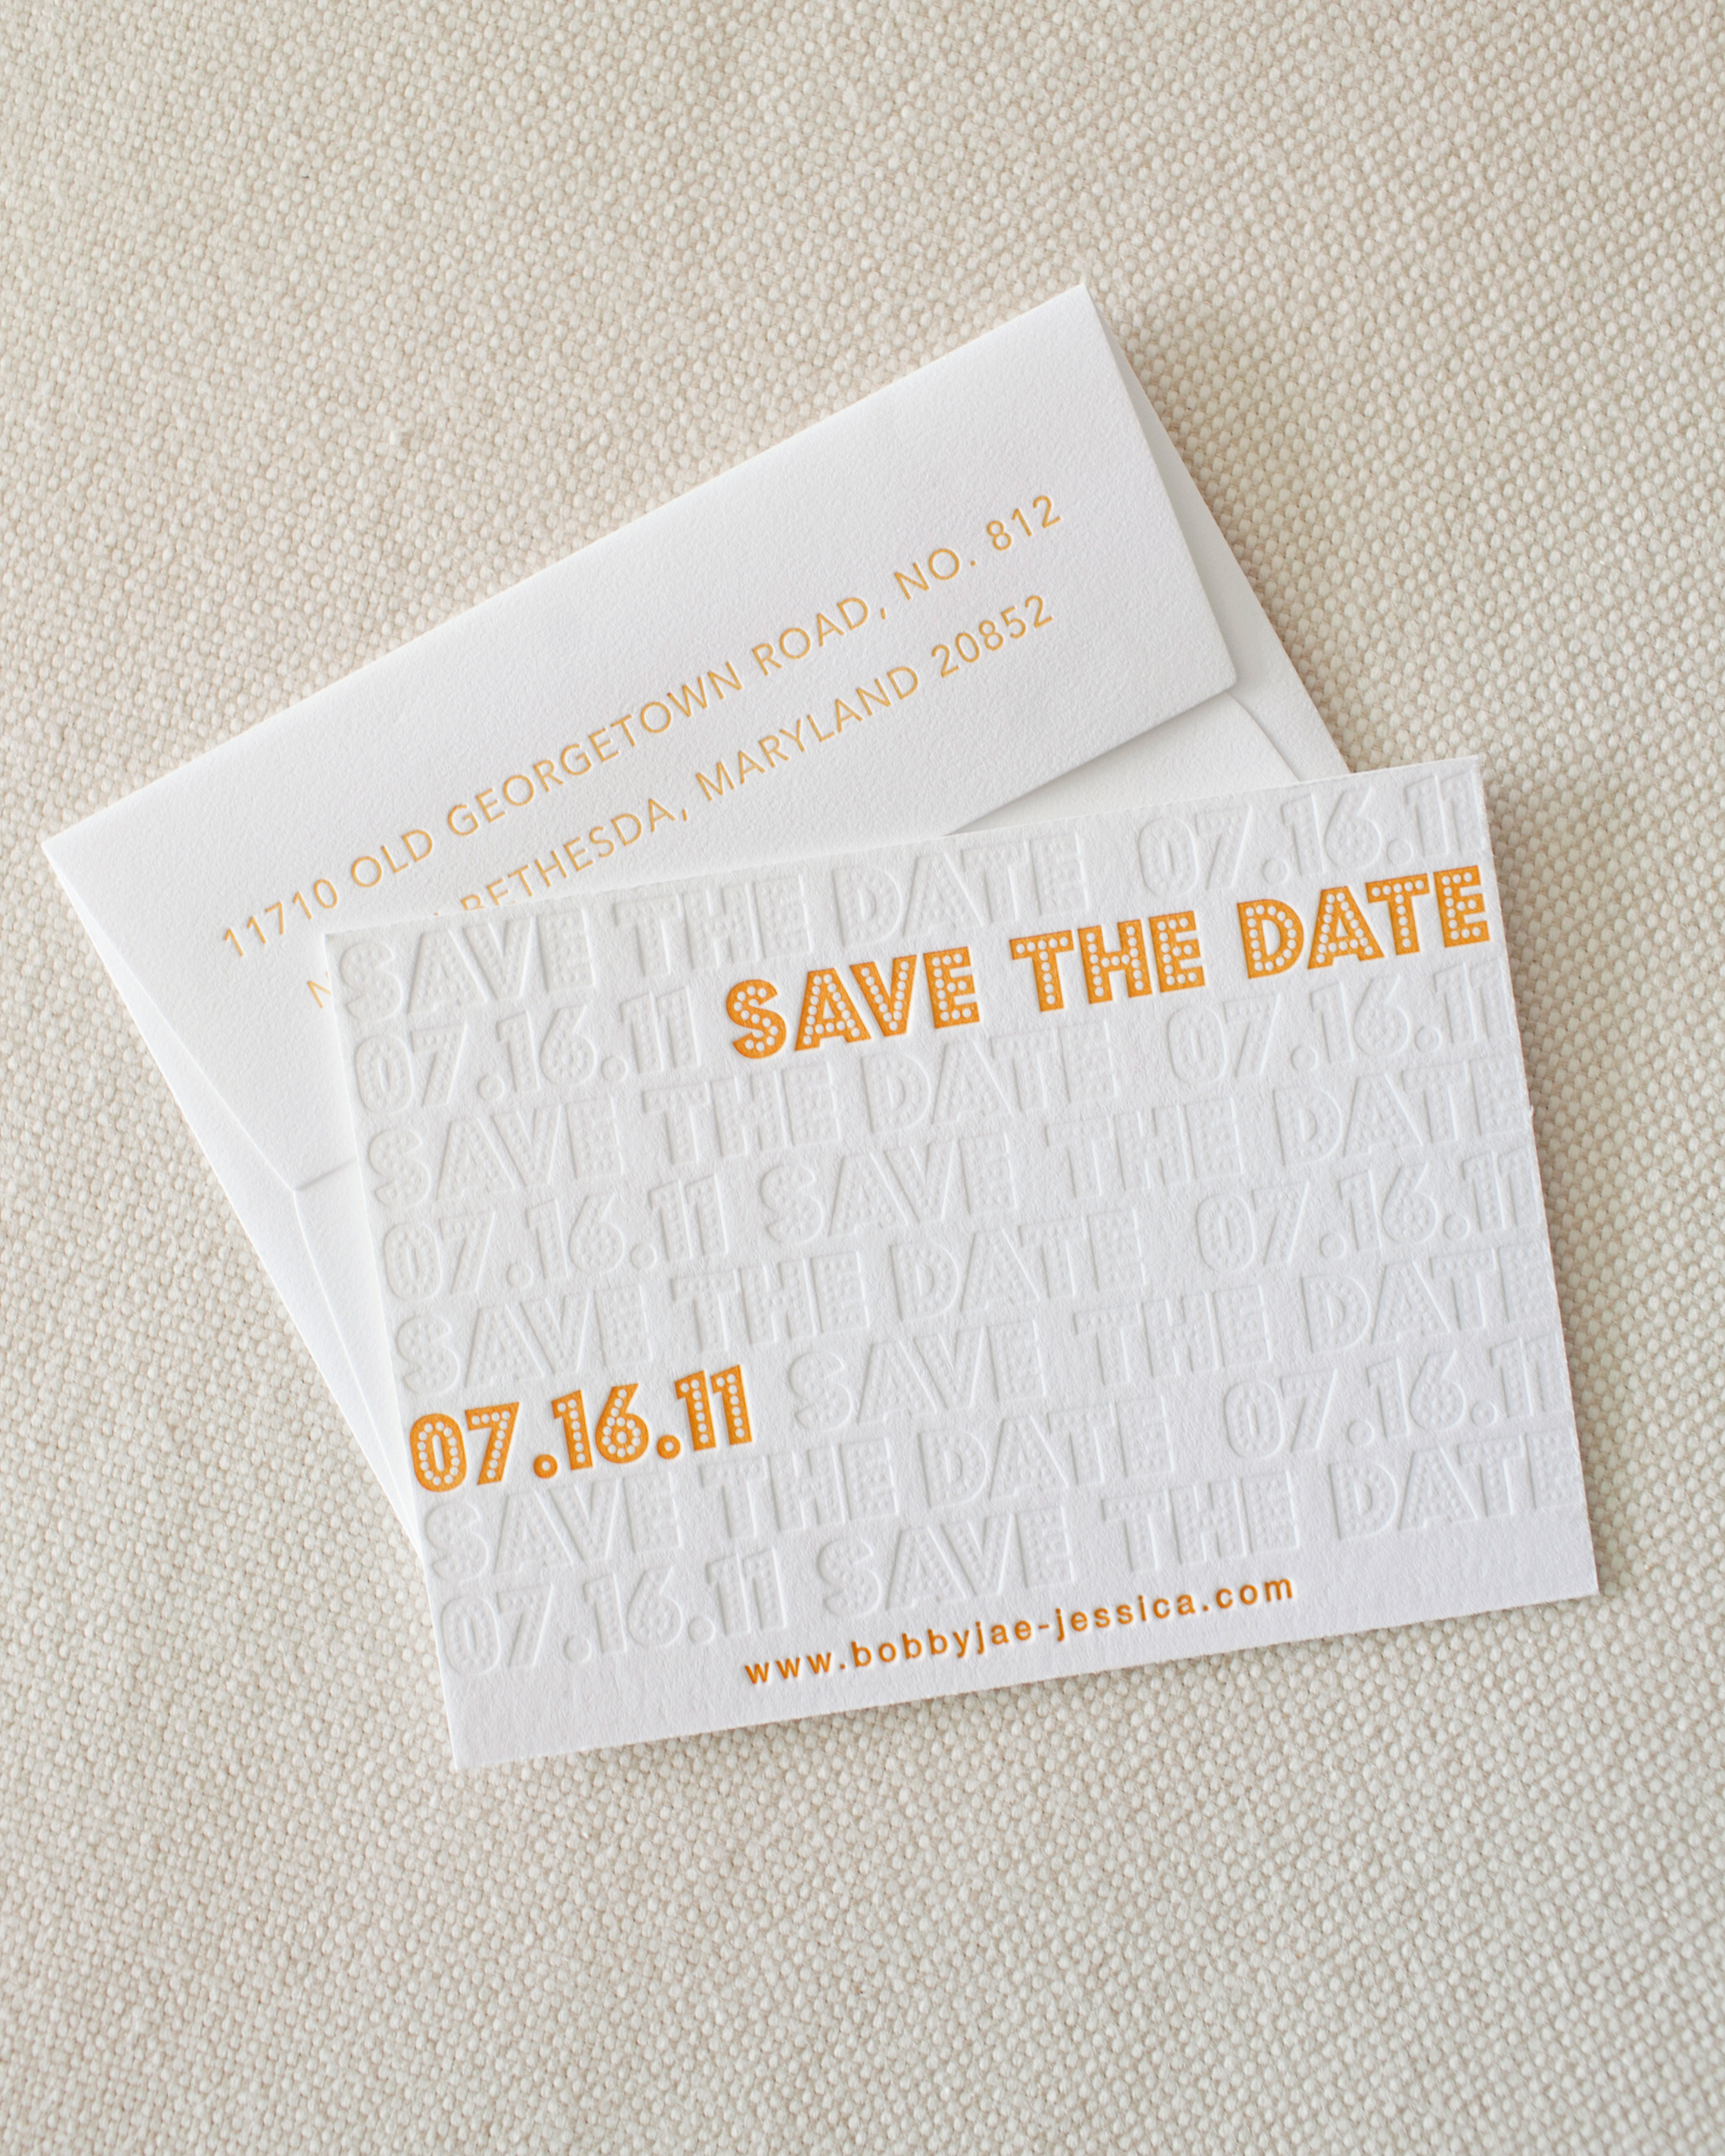 6 Things To Know Before You Send Your Save-the-Dates